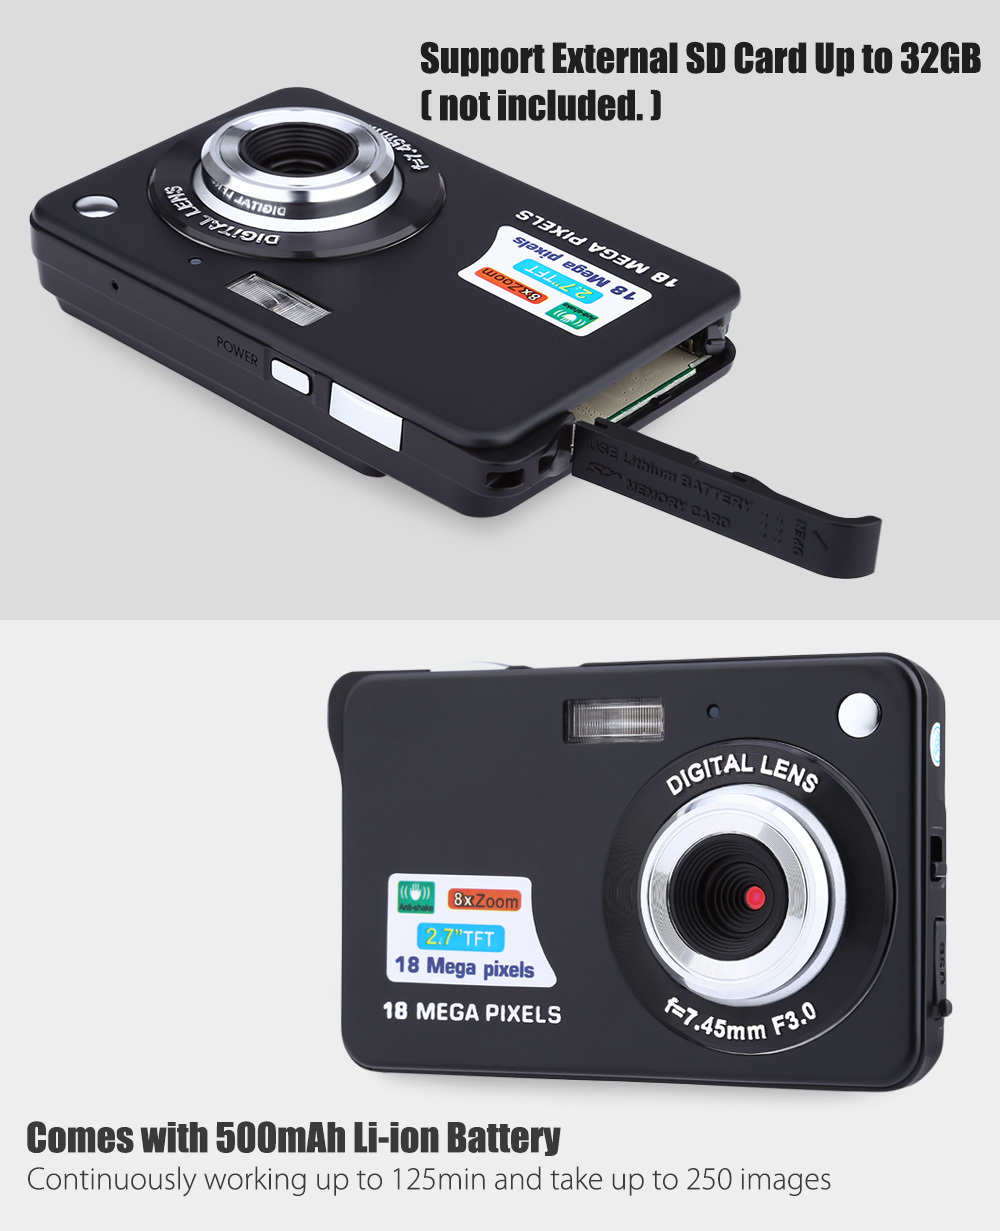 1 X 18.0MP Digital Camera 1 X Power Adapter 1 X USB cable 1 X Lithium  Battery 1 X CD 1 X Camera Pouch 1 X Strap 1 X User manual